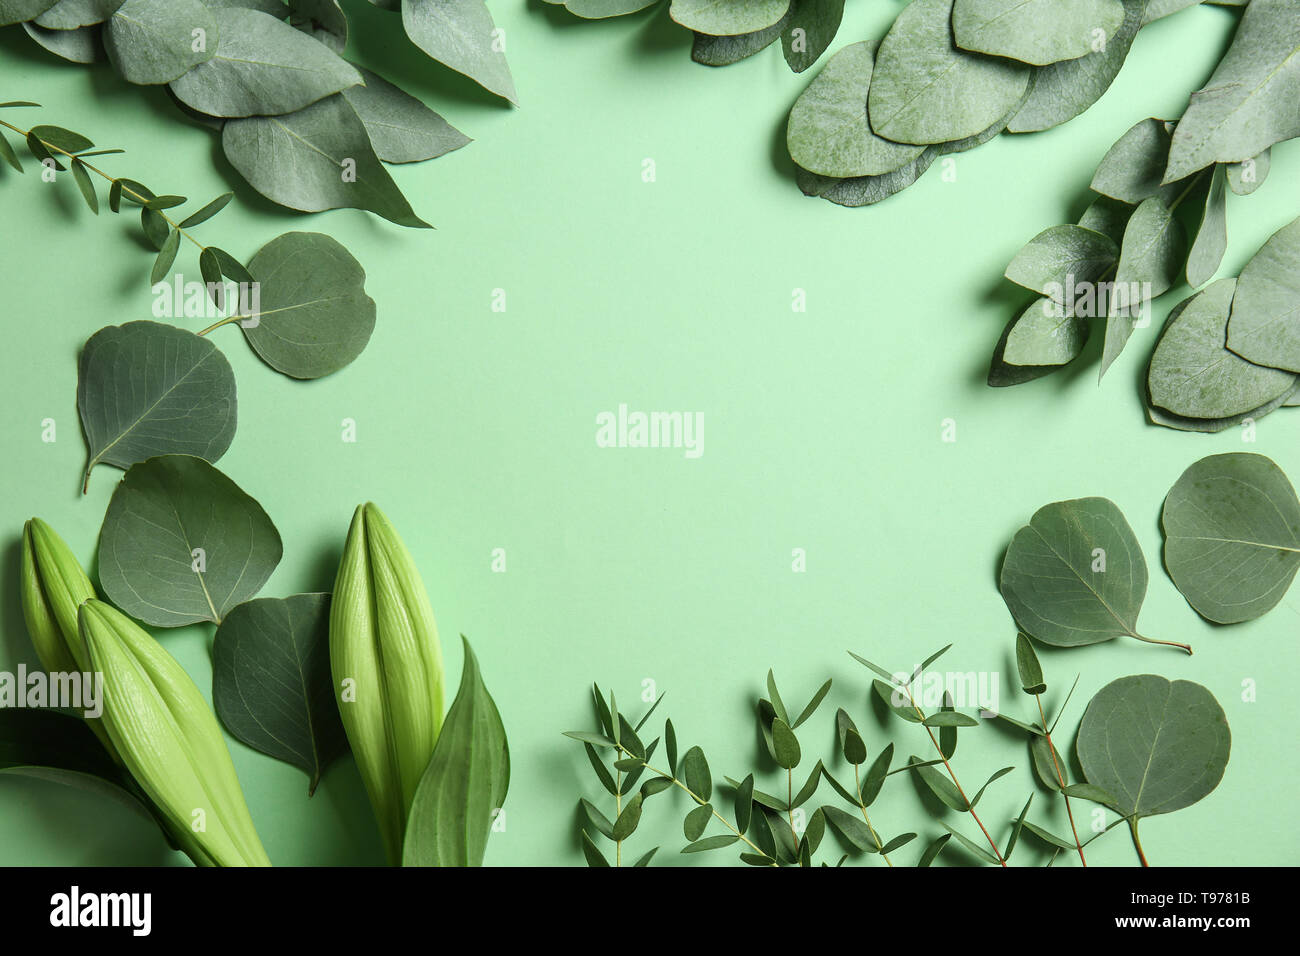 Frame made of green eucalyptus branches and leaves on color background - Stock Image